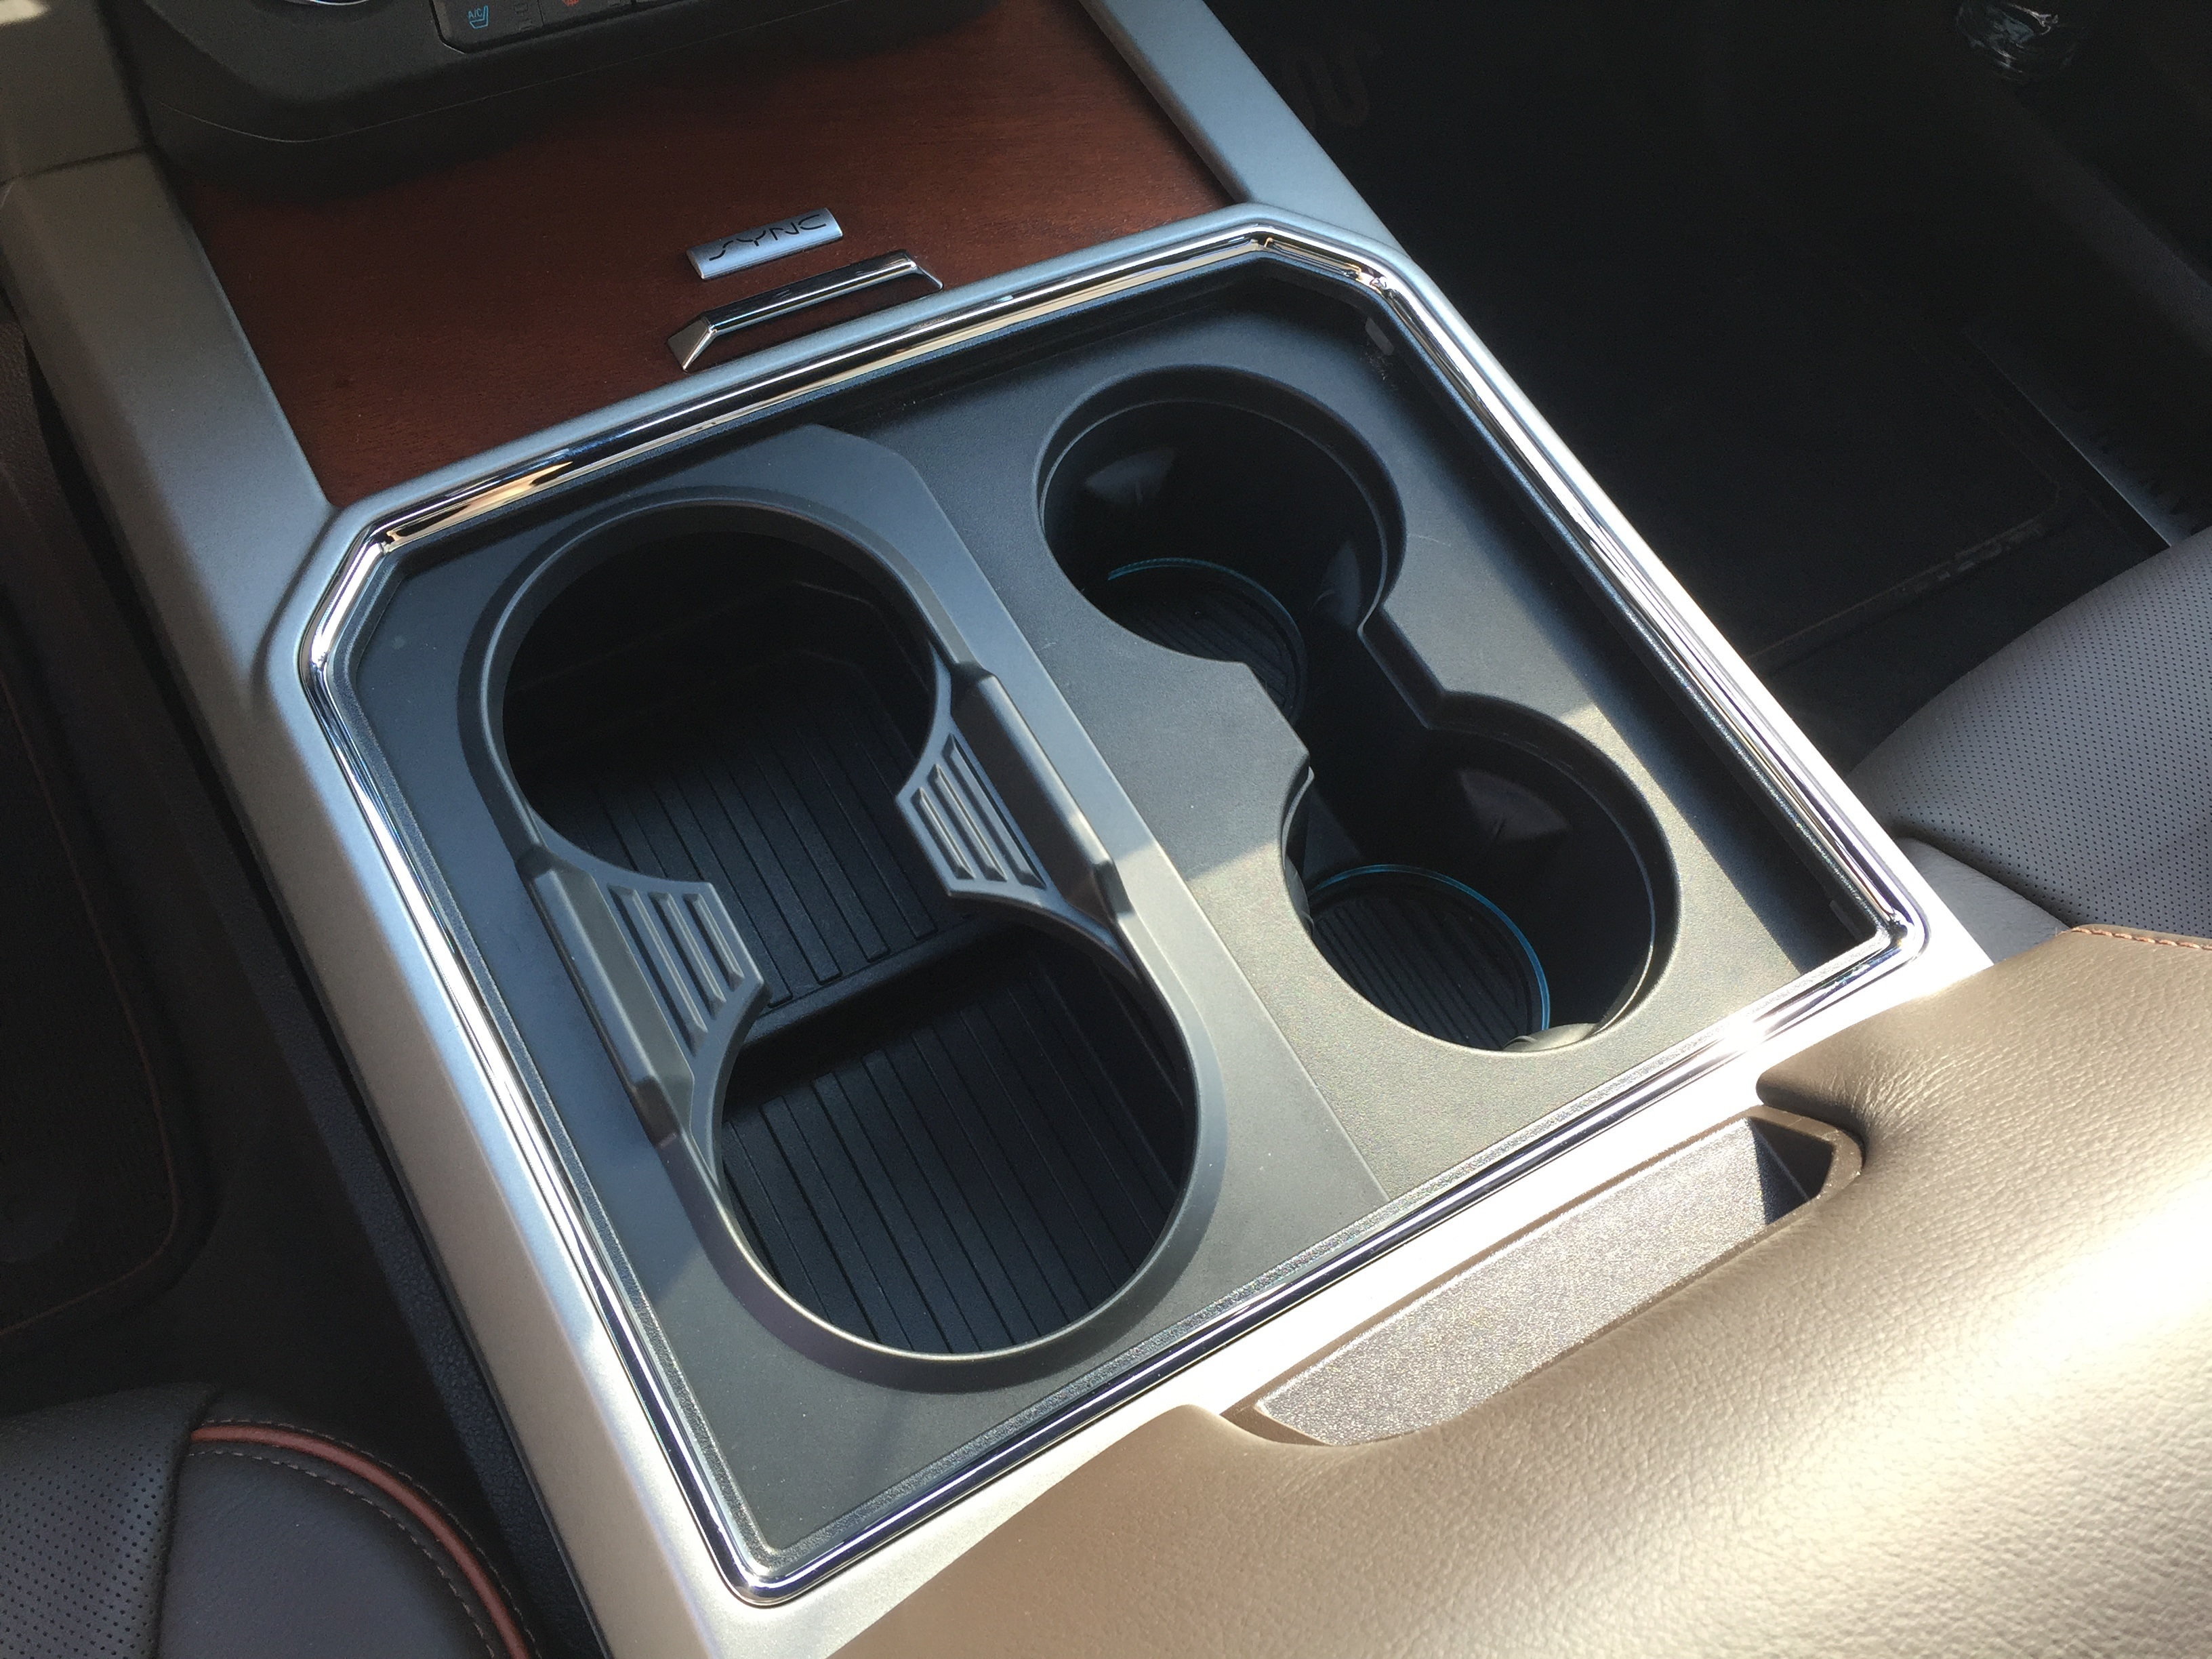 The pickup will have cupholders that switch from two to four in front